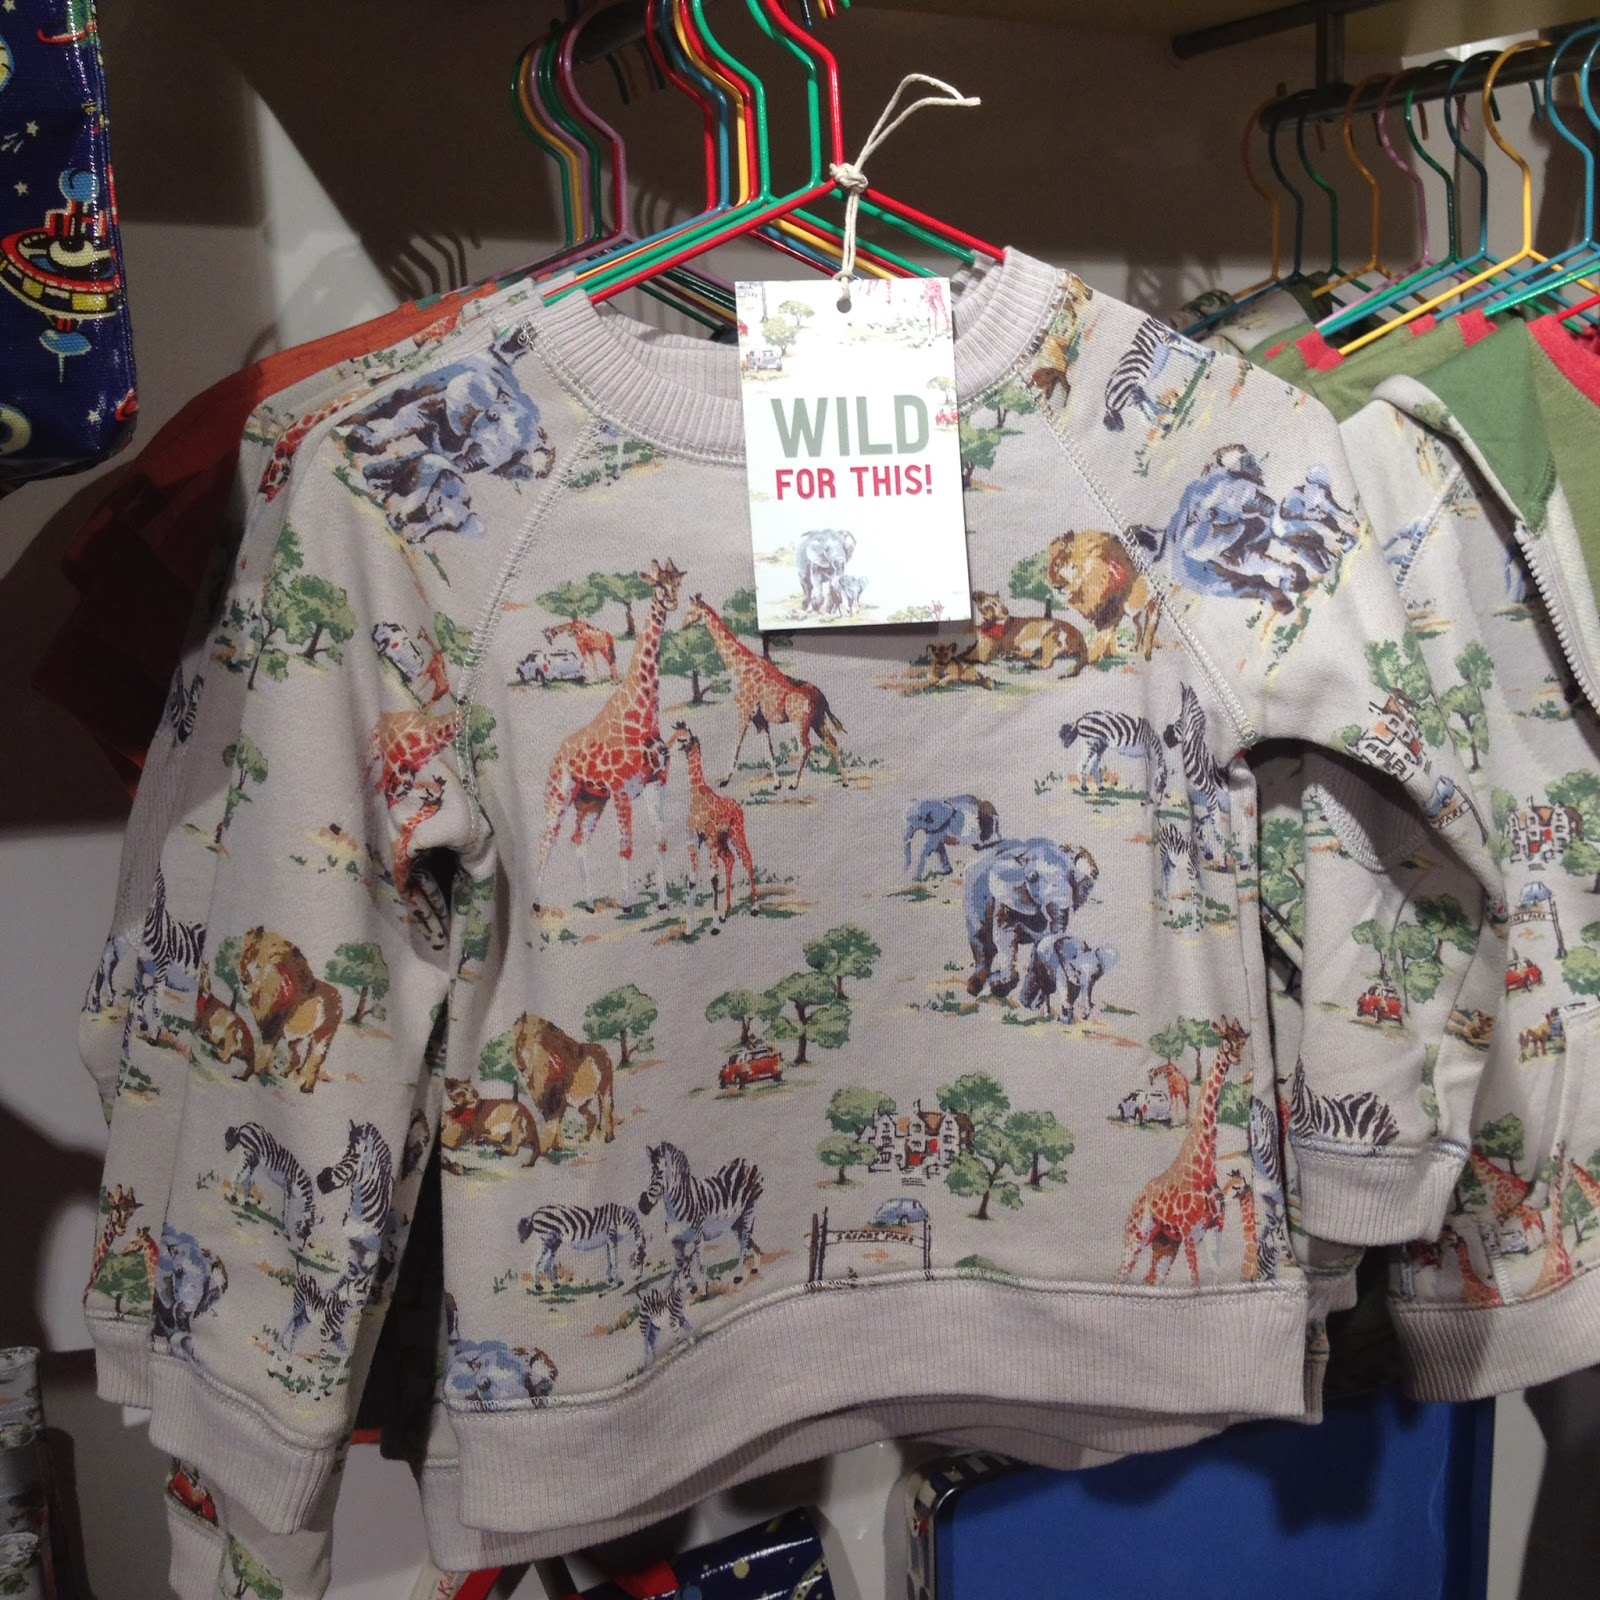 V. I. BASH: Our 'wild' shopping spree at the Cath Kidston safari evening | Cath Kidston | safari print | shopping | fashion | safari party | 180 Piccadilly | giraffes | cath kids | vintage print | london | store | the ritz | the wolseley | fortmun and mason | shopping iwht mummy | competition | woburn safari park | safari animals | mamasVIb | blog | mummy bloggers | night out | shopping evening at cath kids ton |